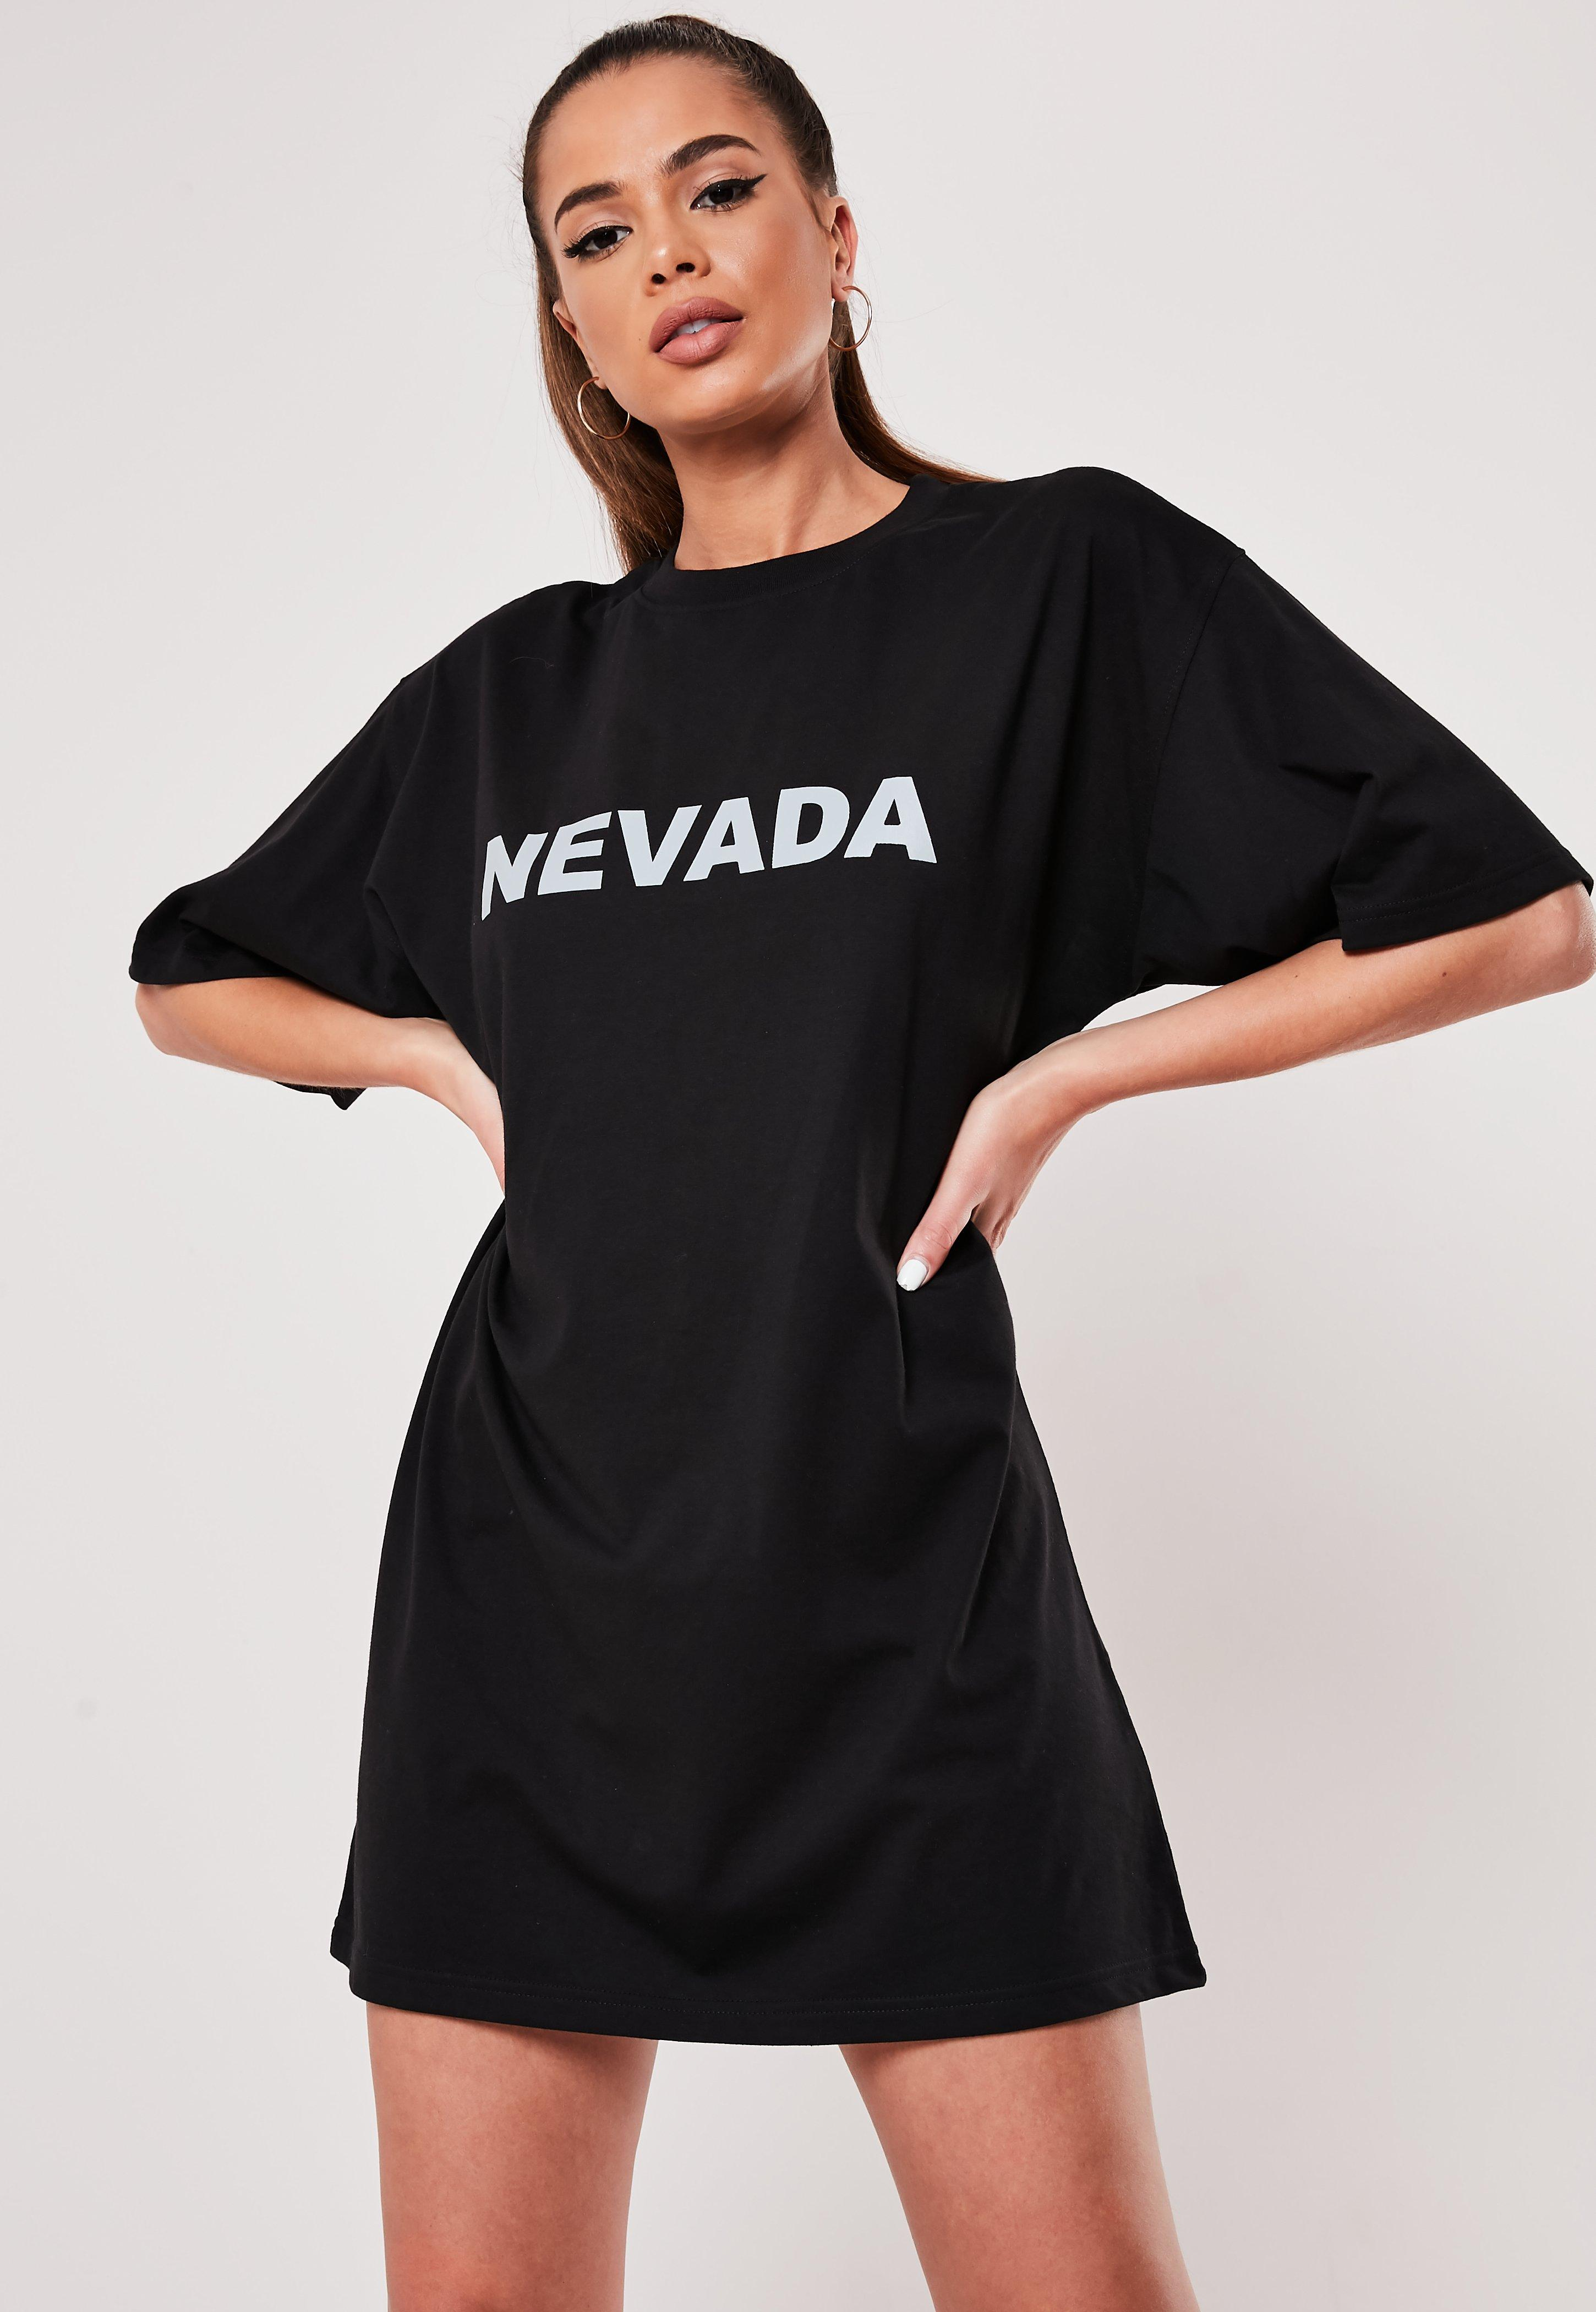 55069072e0c T-Shirt Dresses | Printed & Slogan Dresses - Missguided Australia